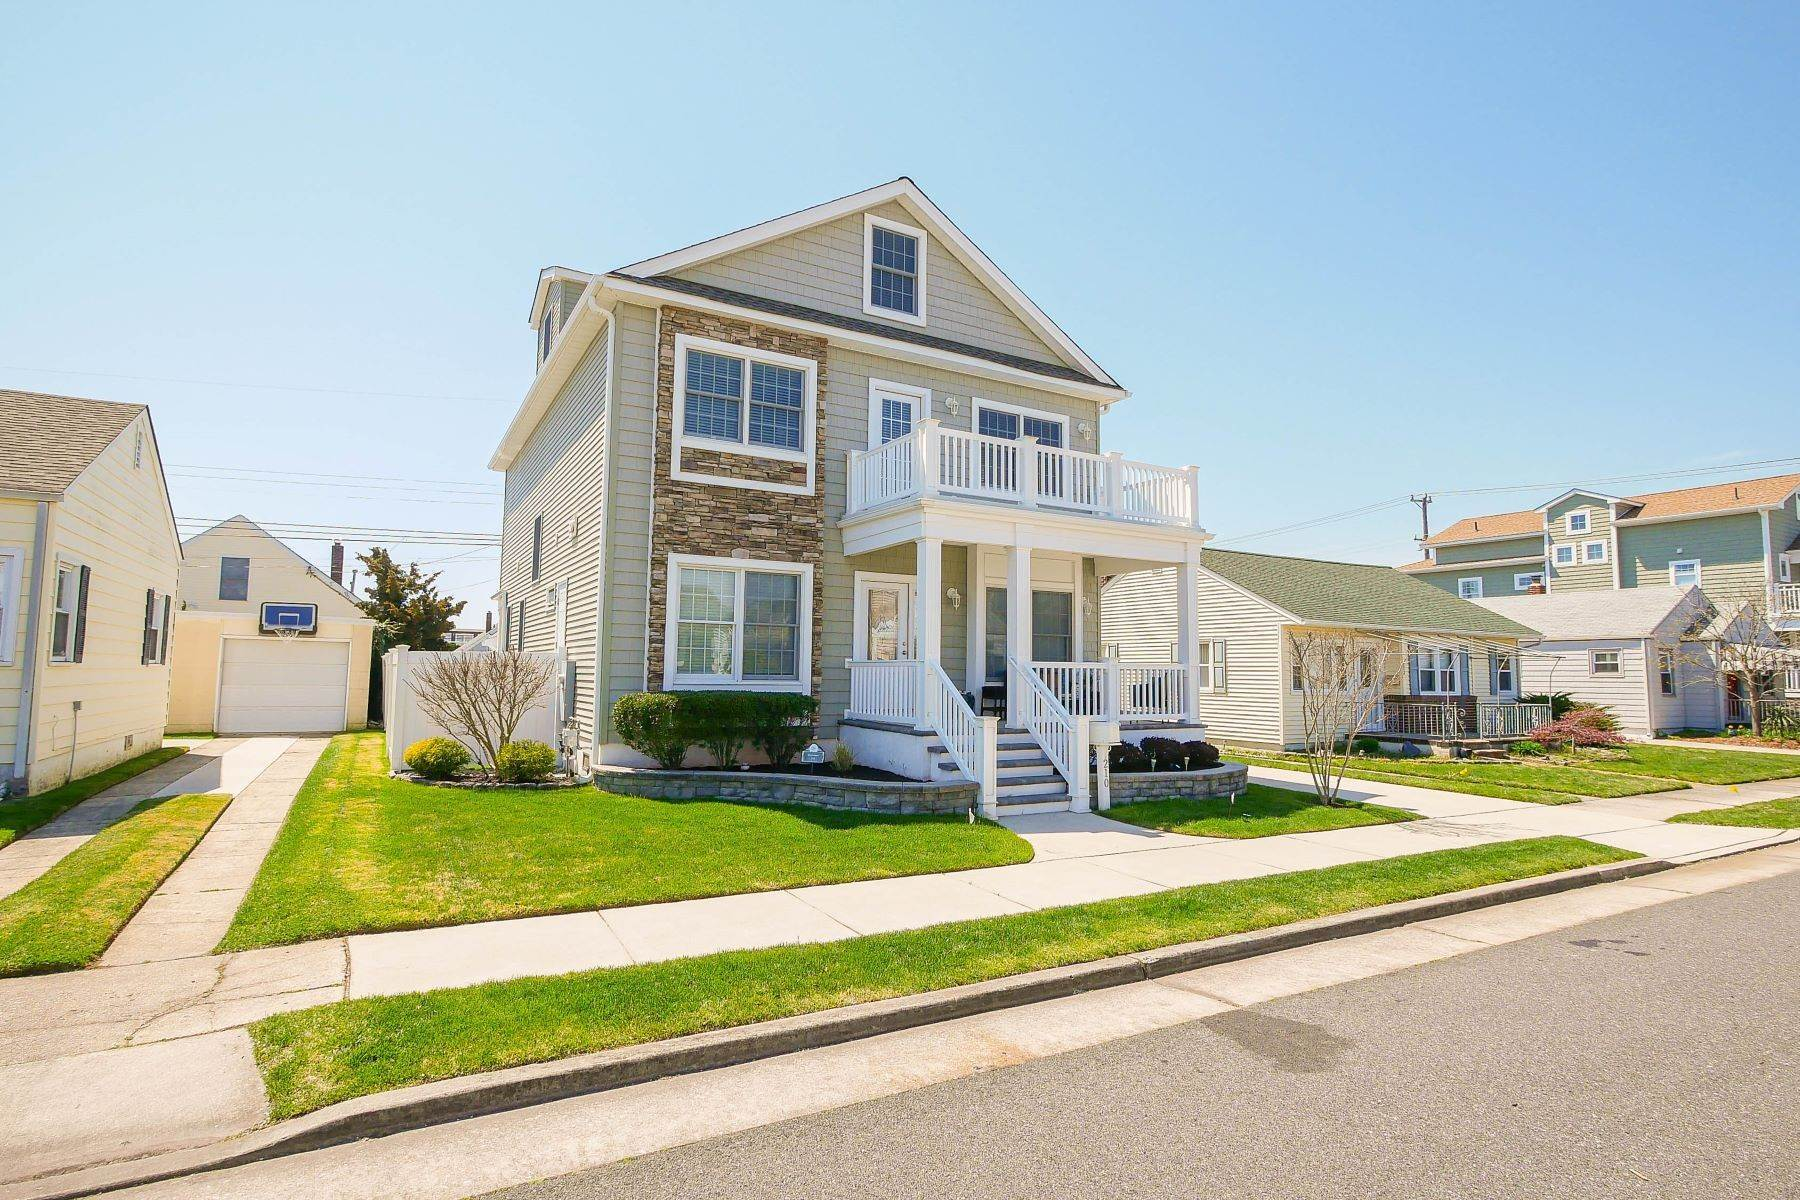 24. Single Family Homes for Sale at 210 N Pembroke Ave Margate, New Jersey 08402 United States